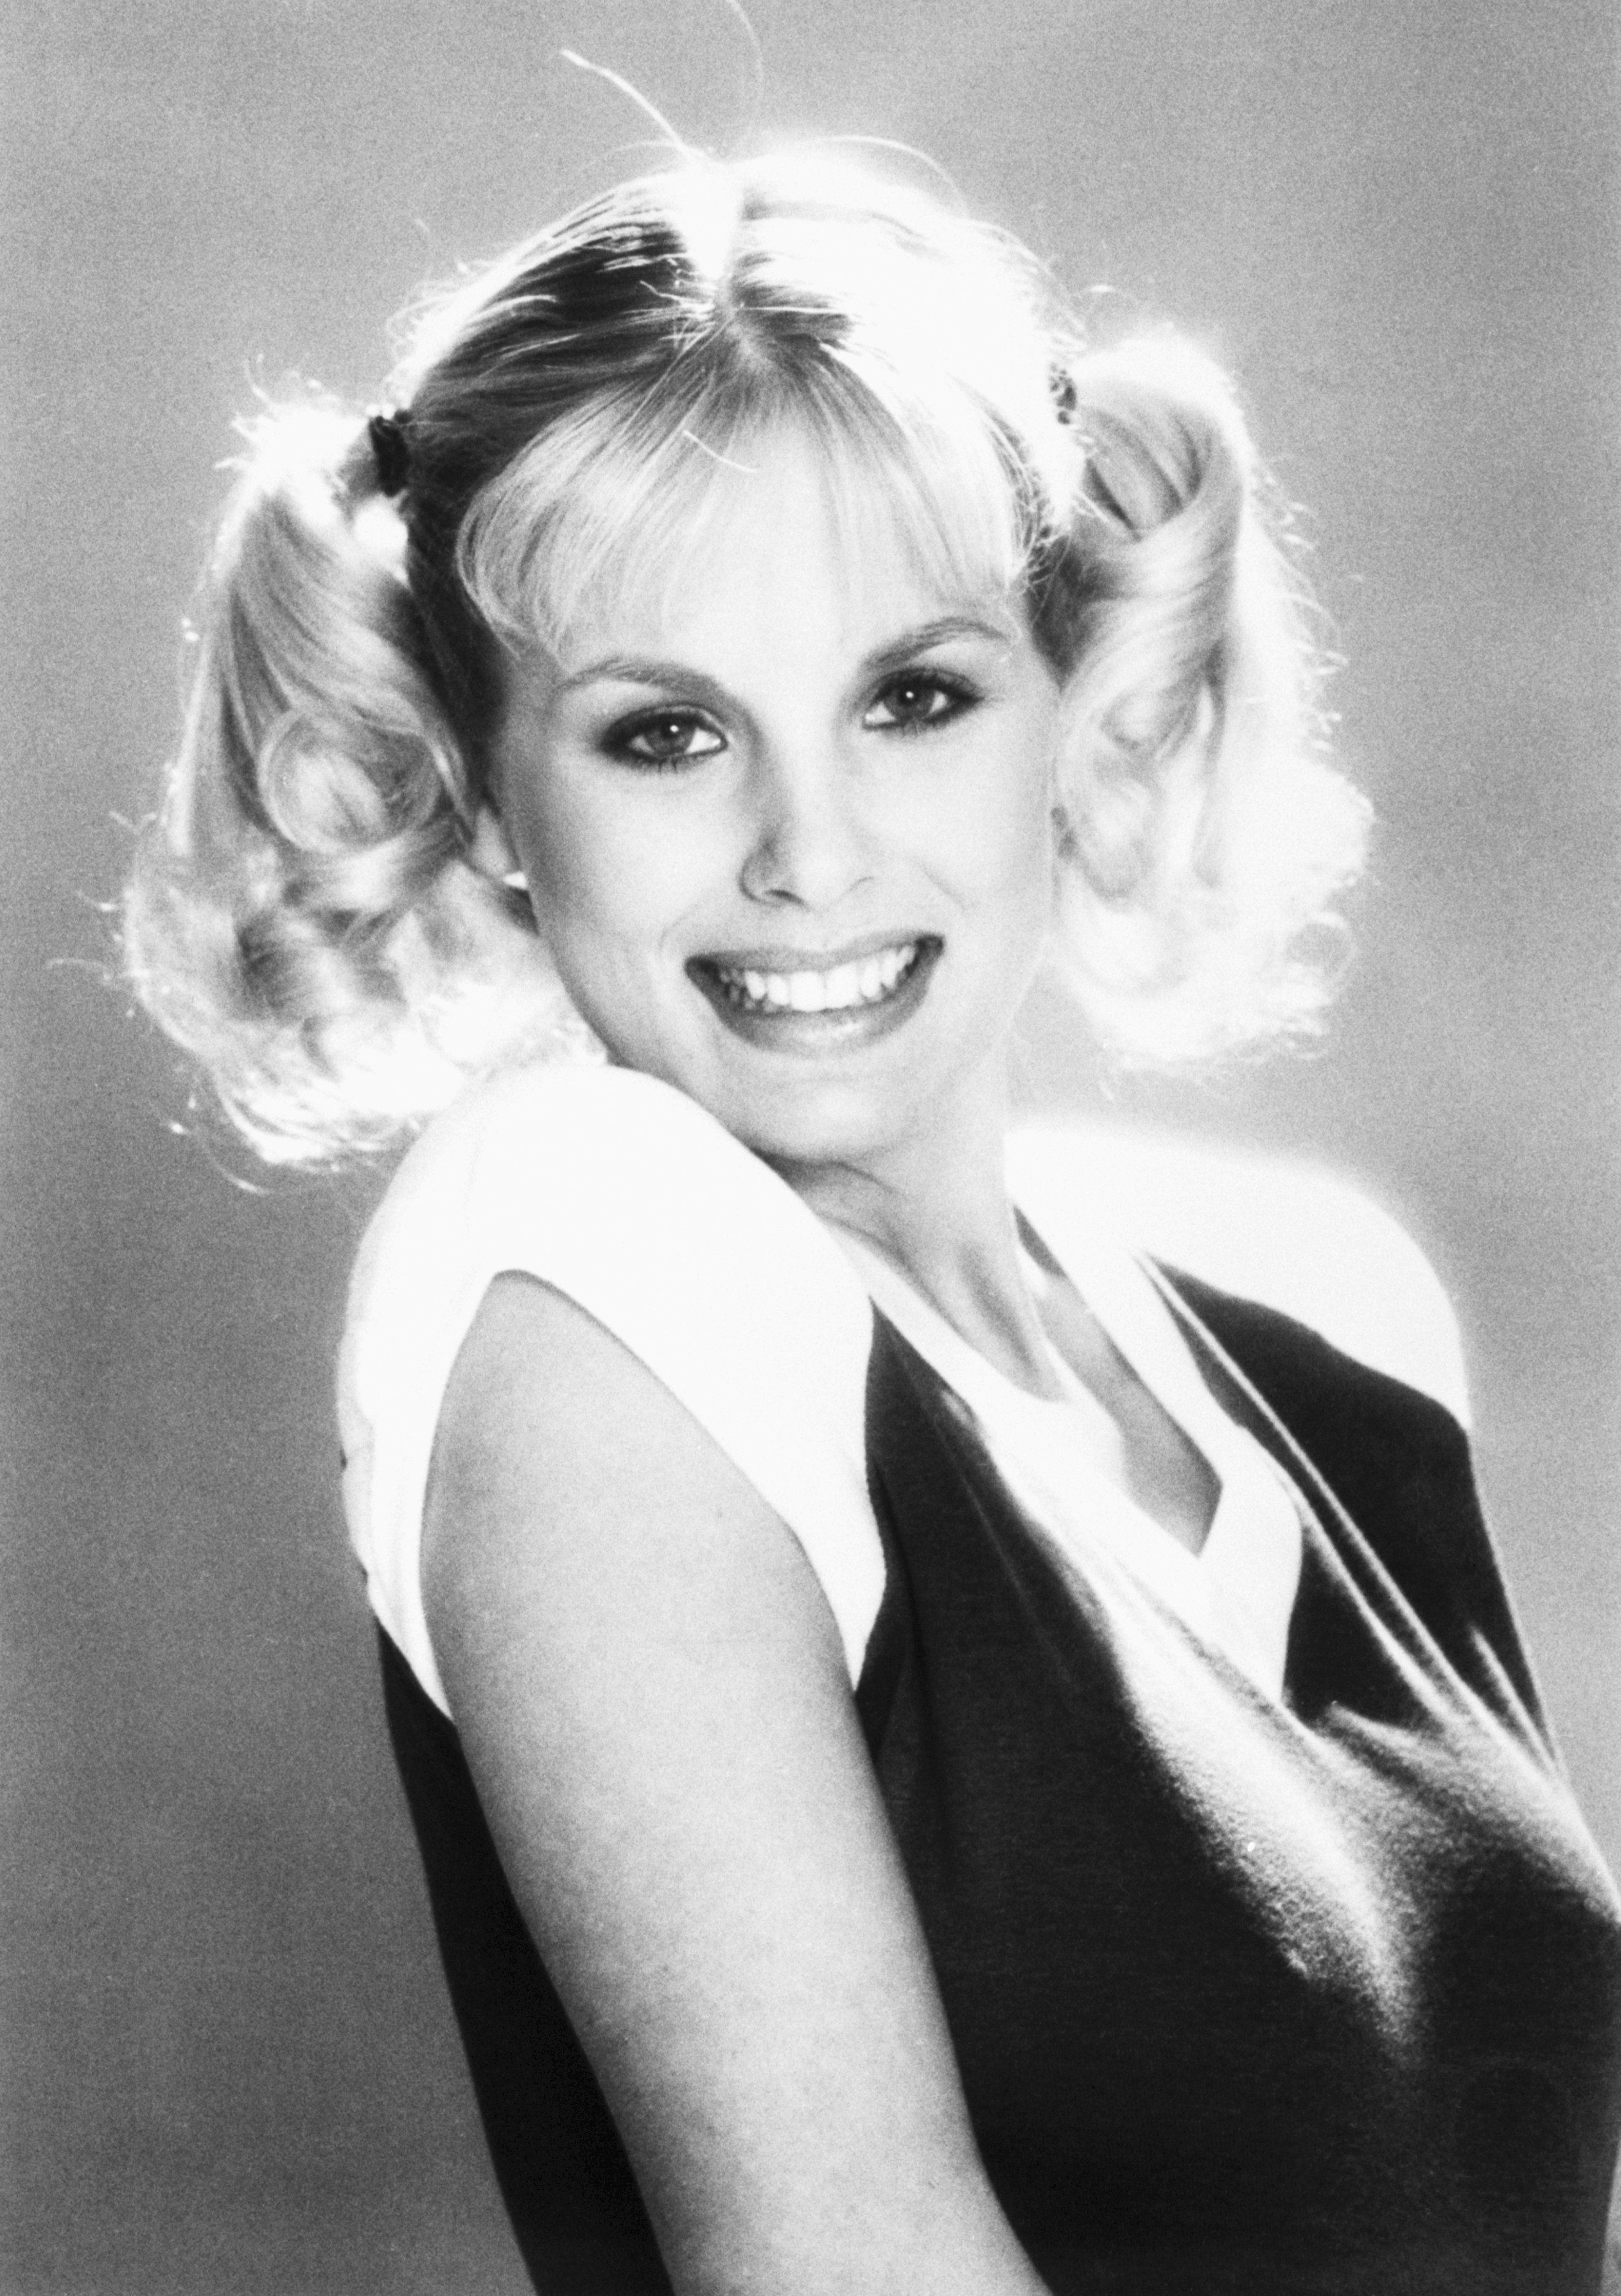 Playboy Magazine's 1980 Playmate of the Year, Dorothy Stratten, 20, on 8/15/1980-Los Angeles | Source: Getty Images